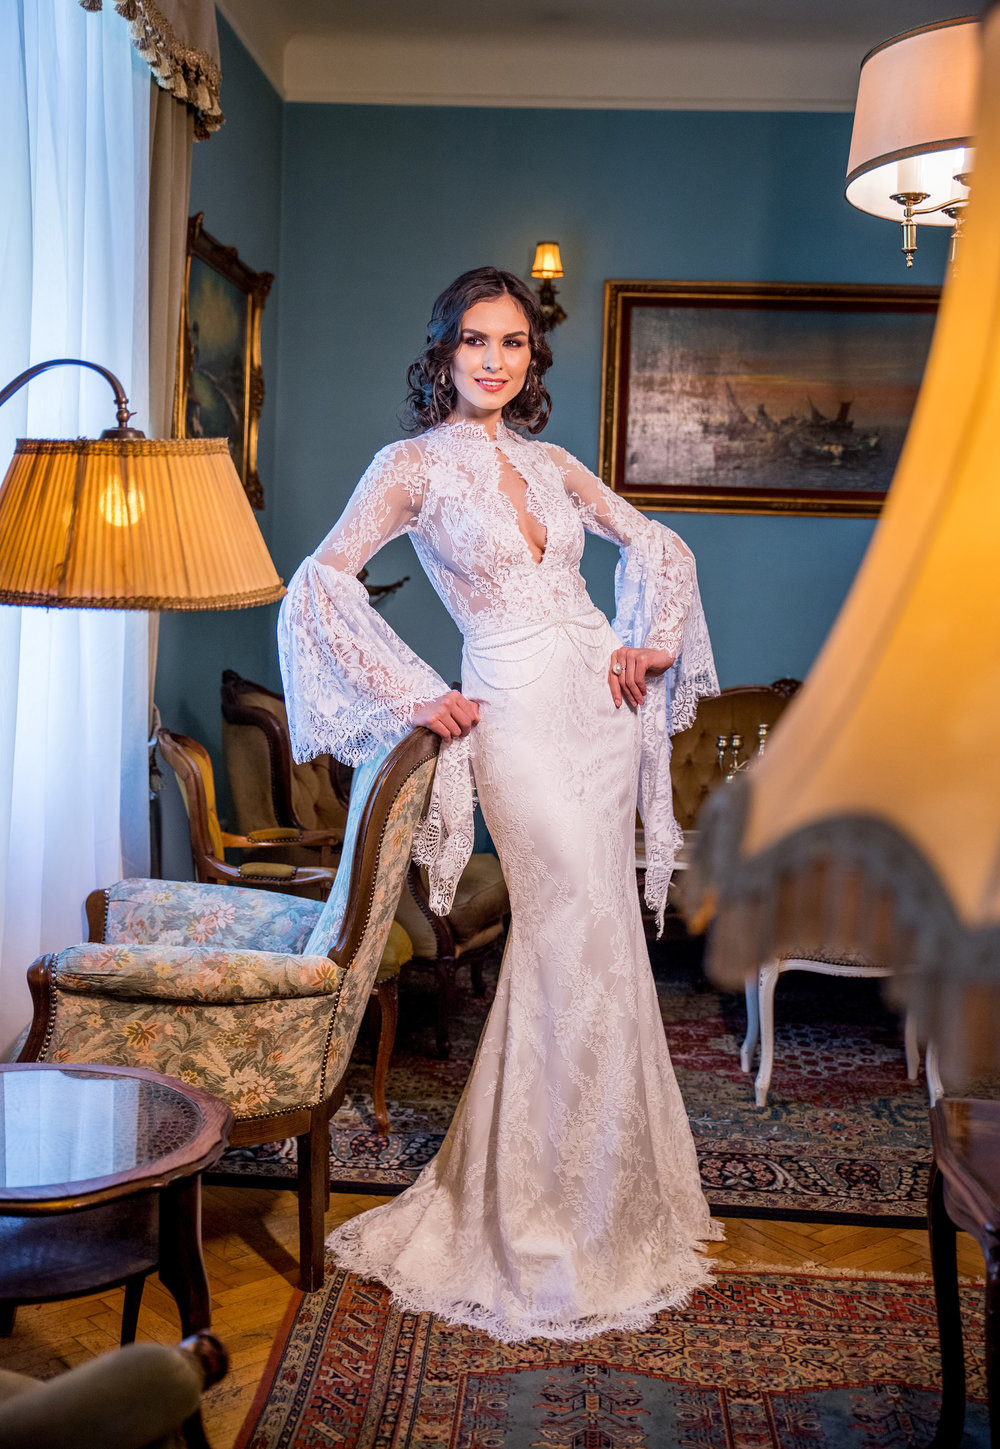 Featured:  Acacia , ivory lace wedding dress with long bell sleeves and waist accessorized with pearls